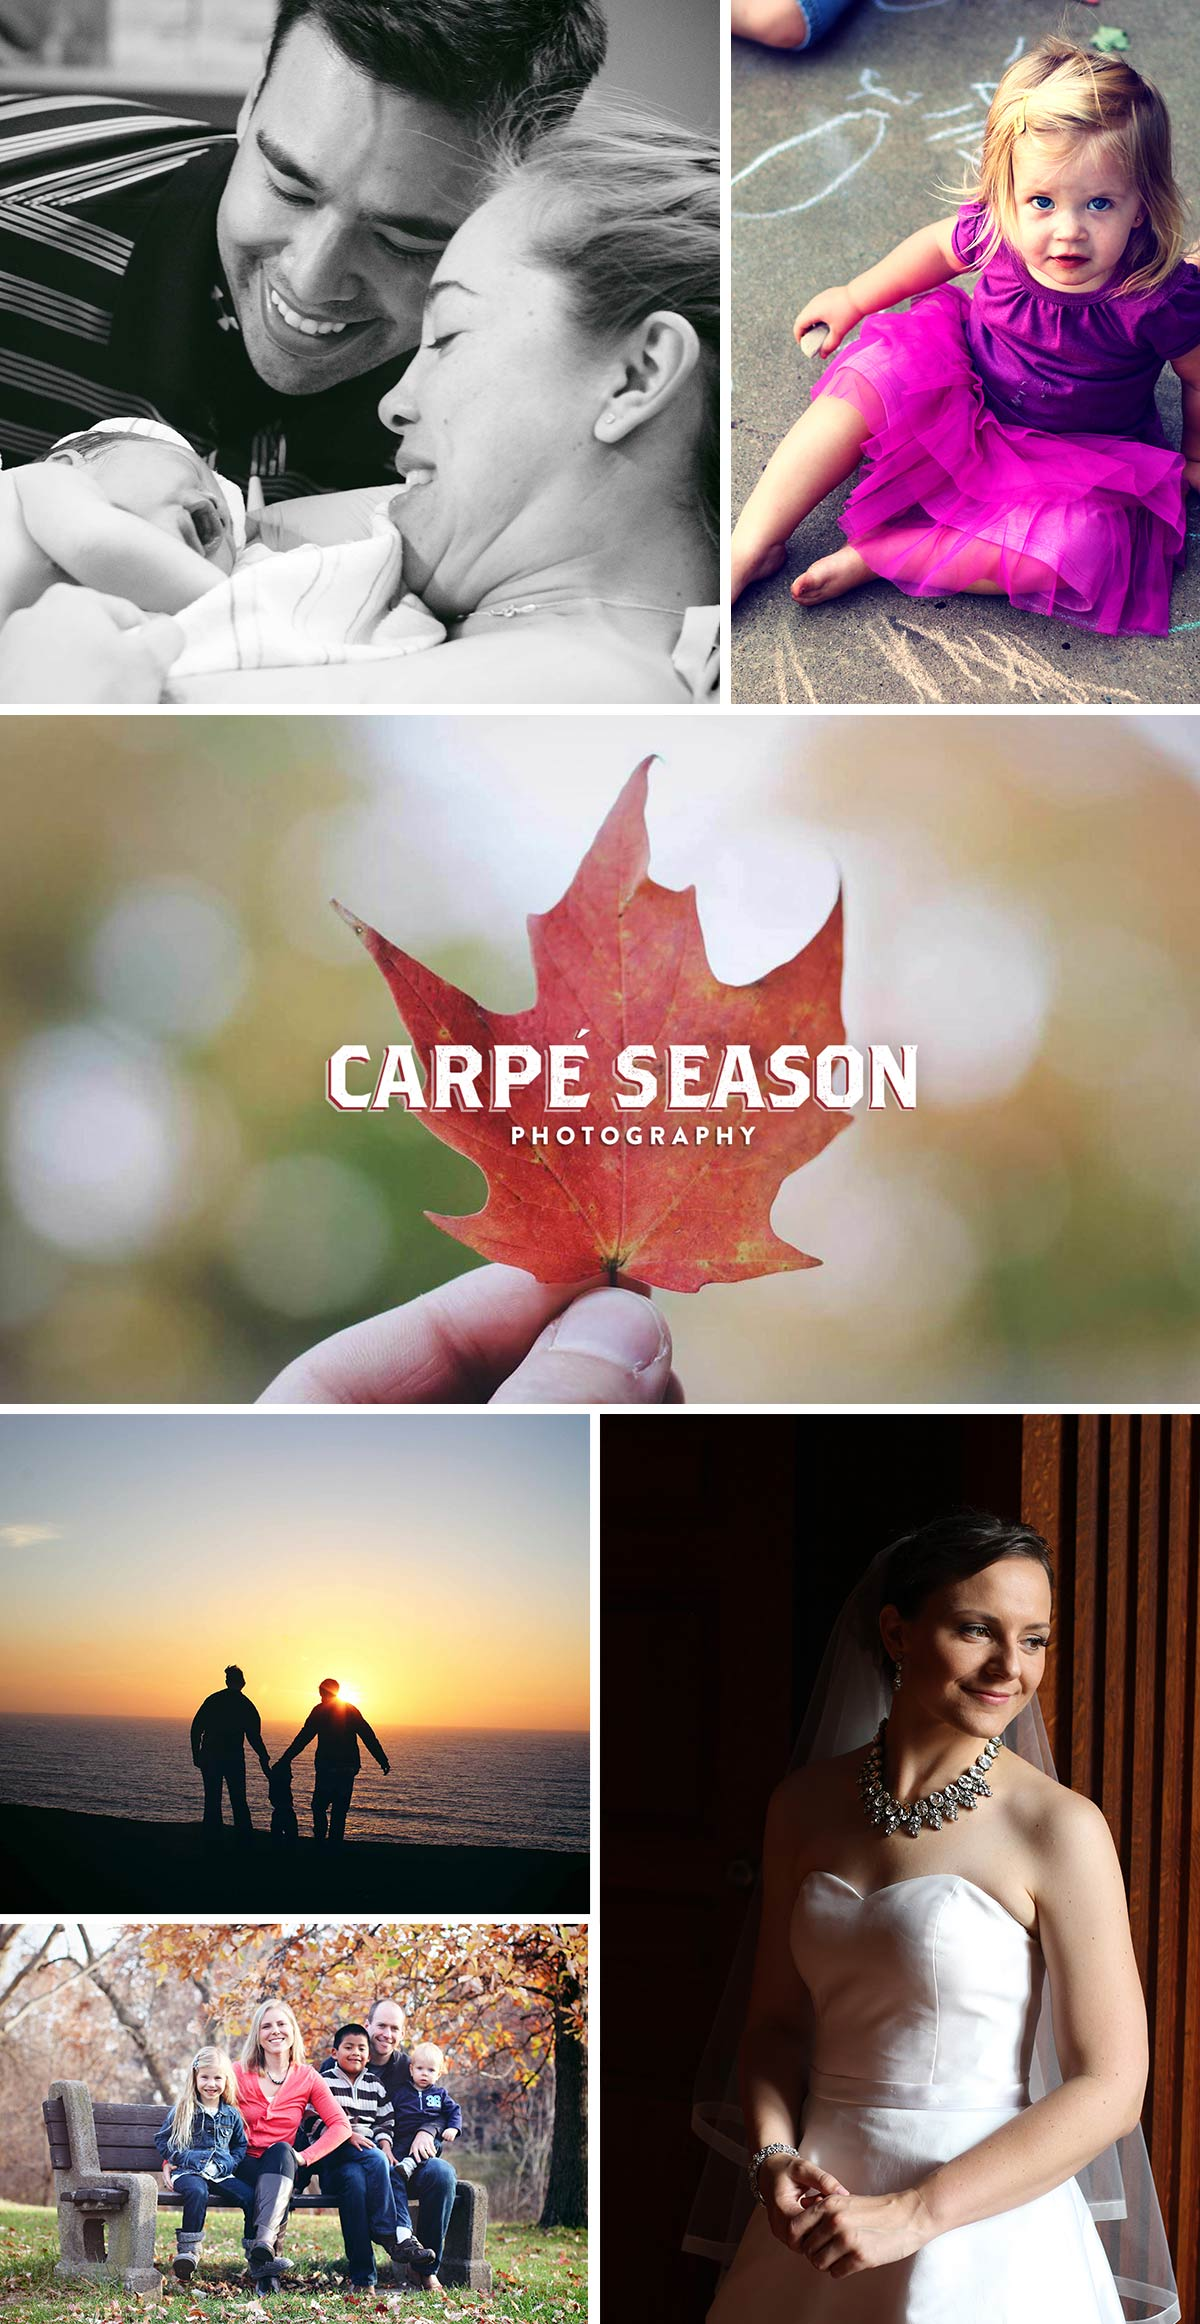 carpeseason-photography